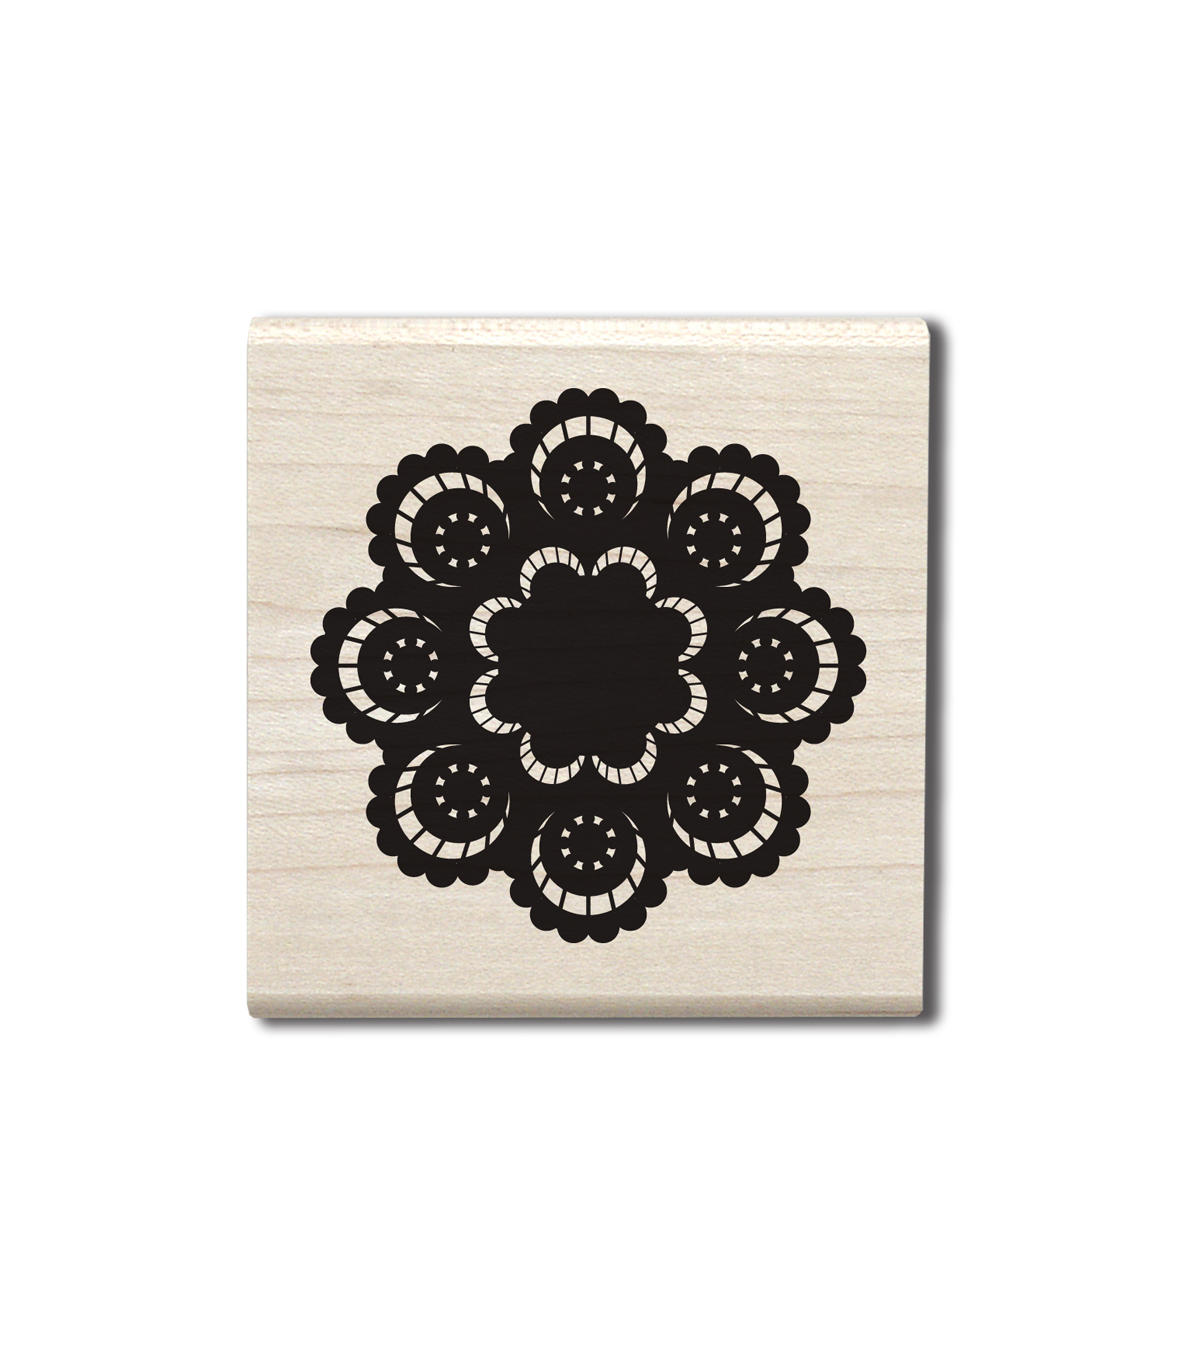 Jillibean Soup Wood Stamp-Doily I Large